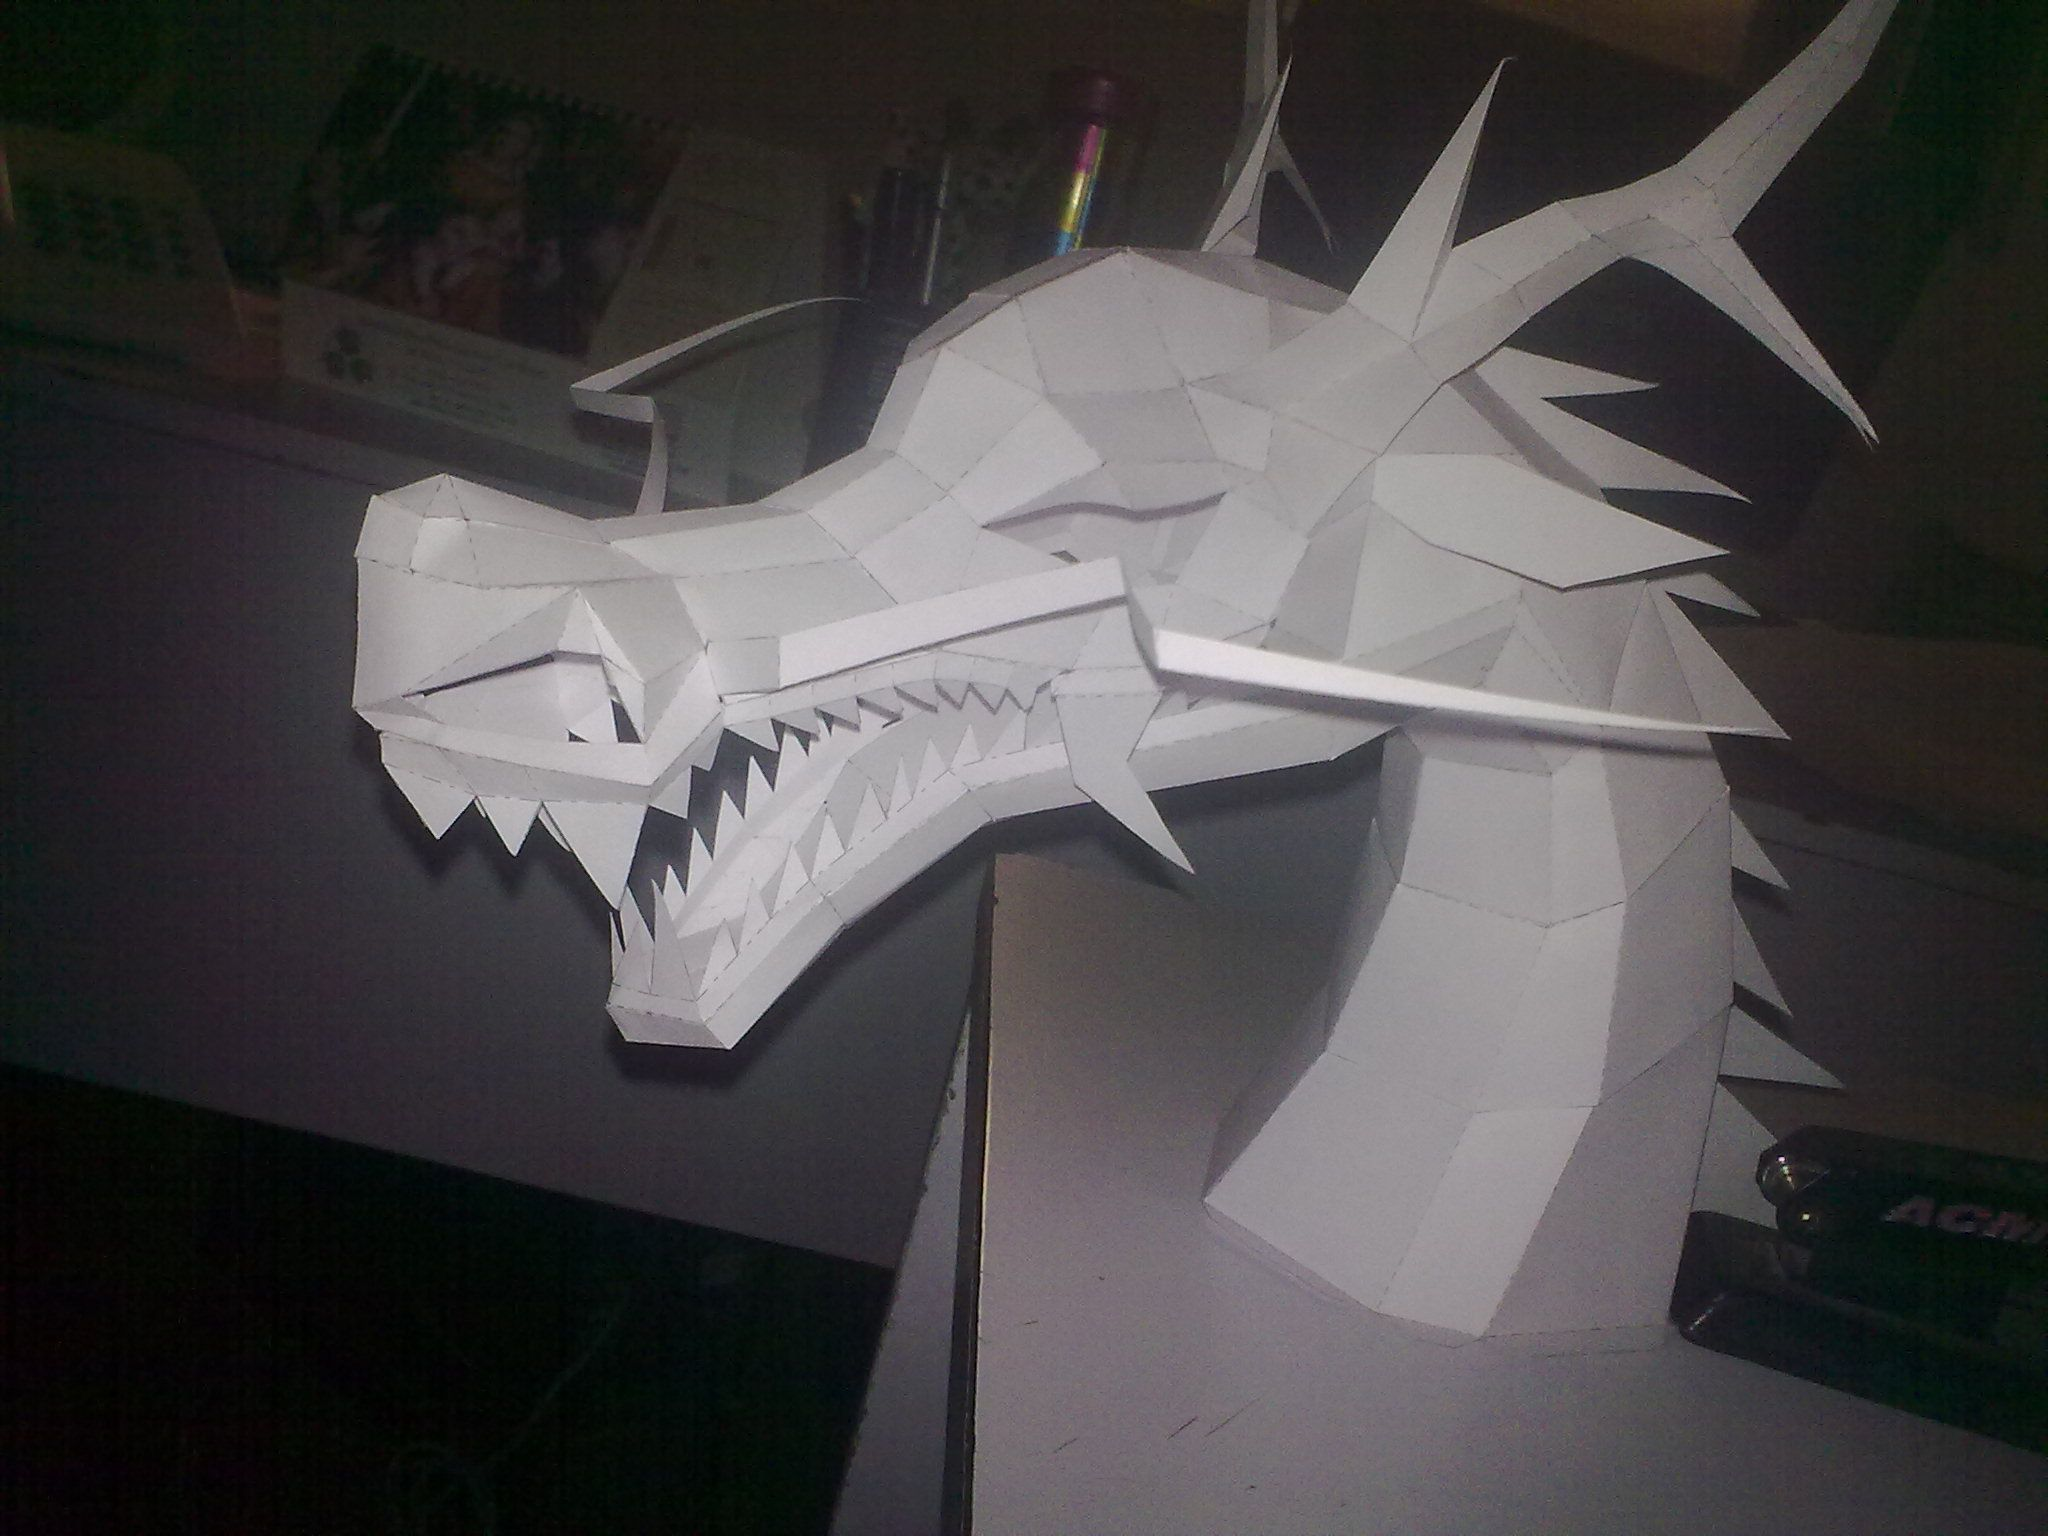 Dragon papercraft | Paper models | Paper Crafts, Paper ... - photo#50